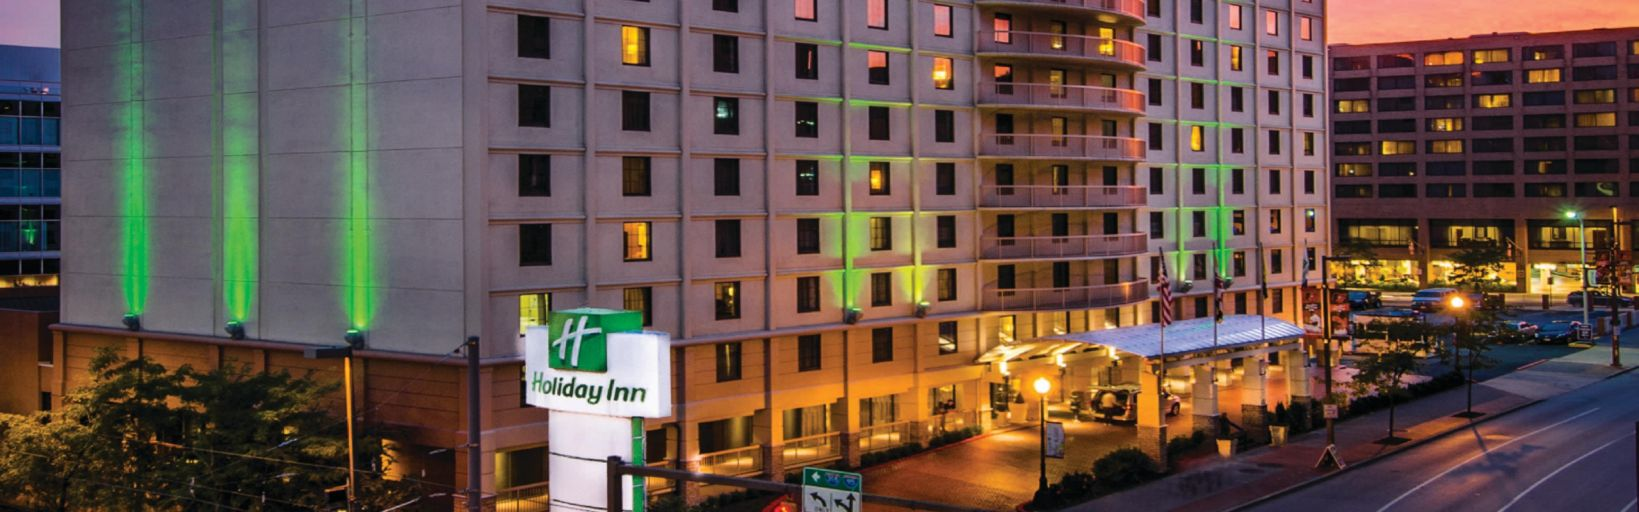 Hotel Exterior Holiday Inn Inner Harbor Downtown Baltimore City View Of